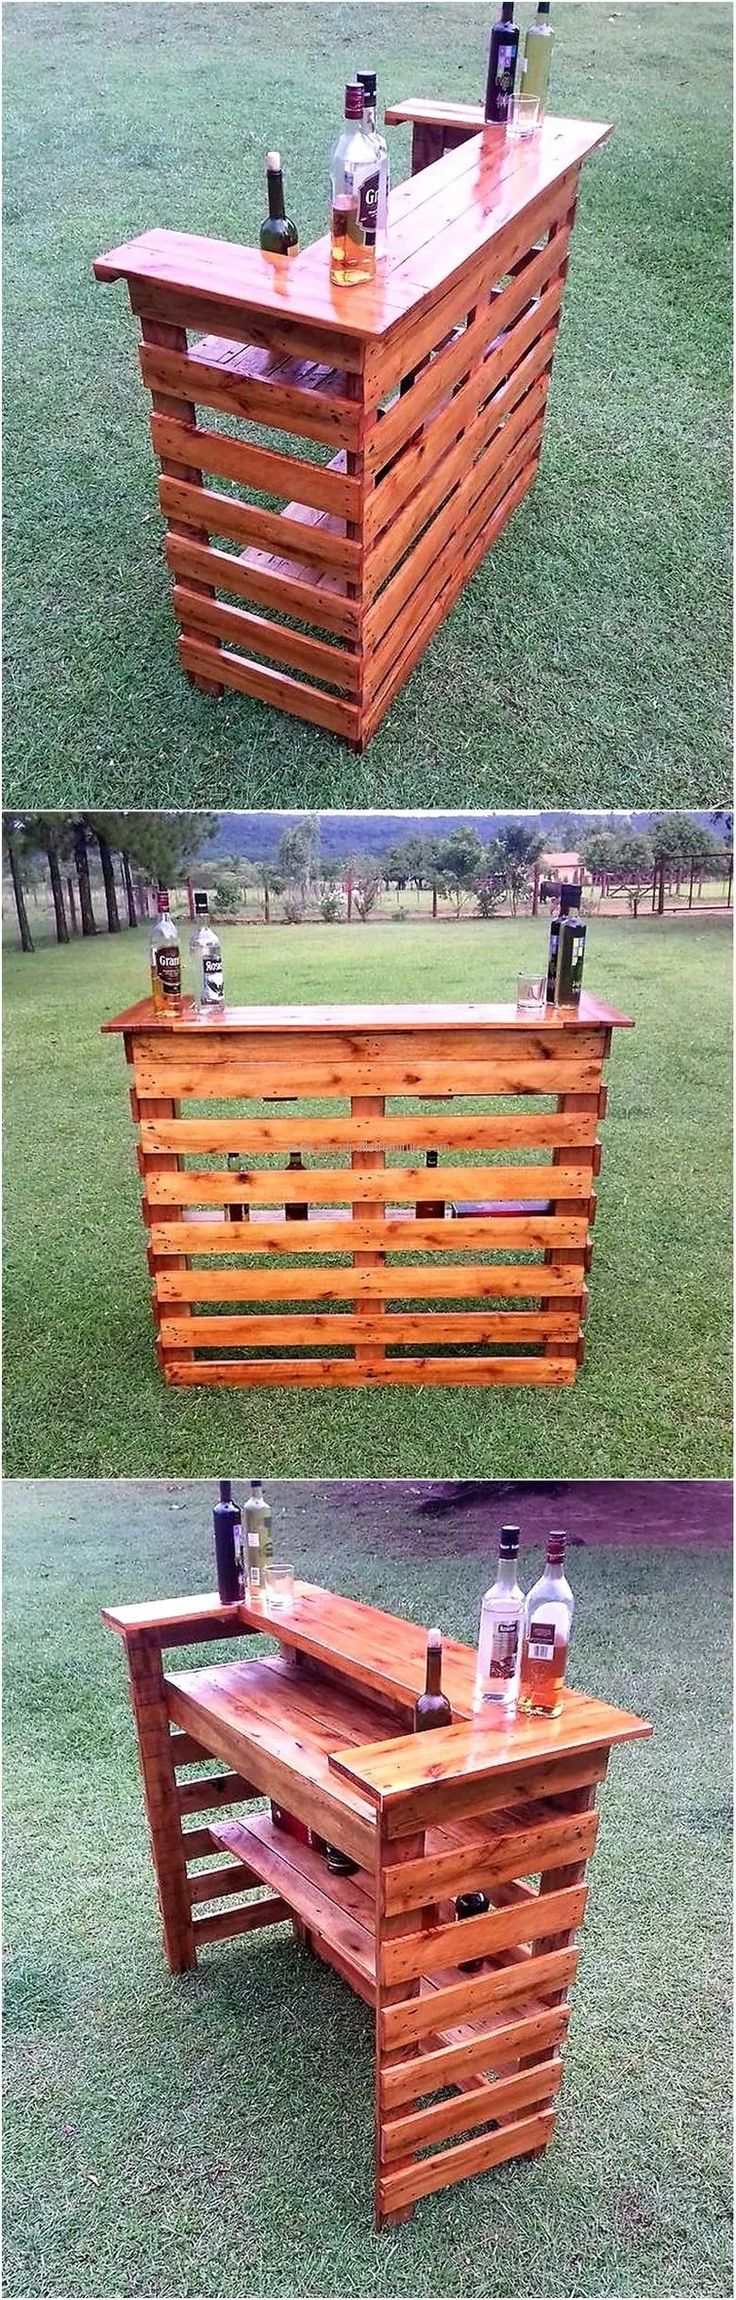 images of pallet furniture. low cost diy pallet wood creations images of furniture e